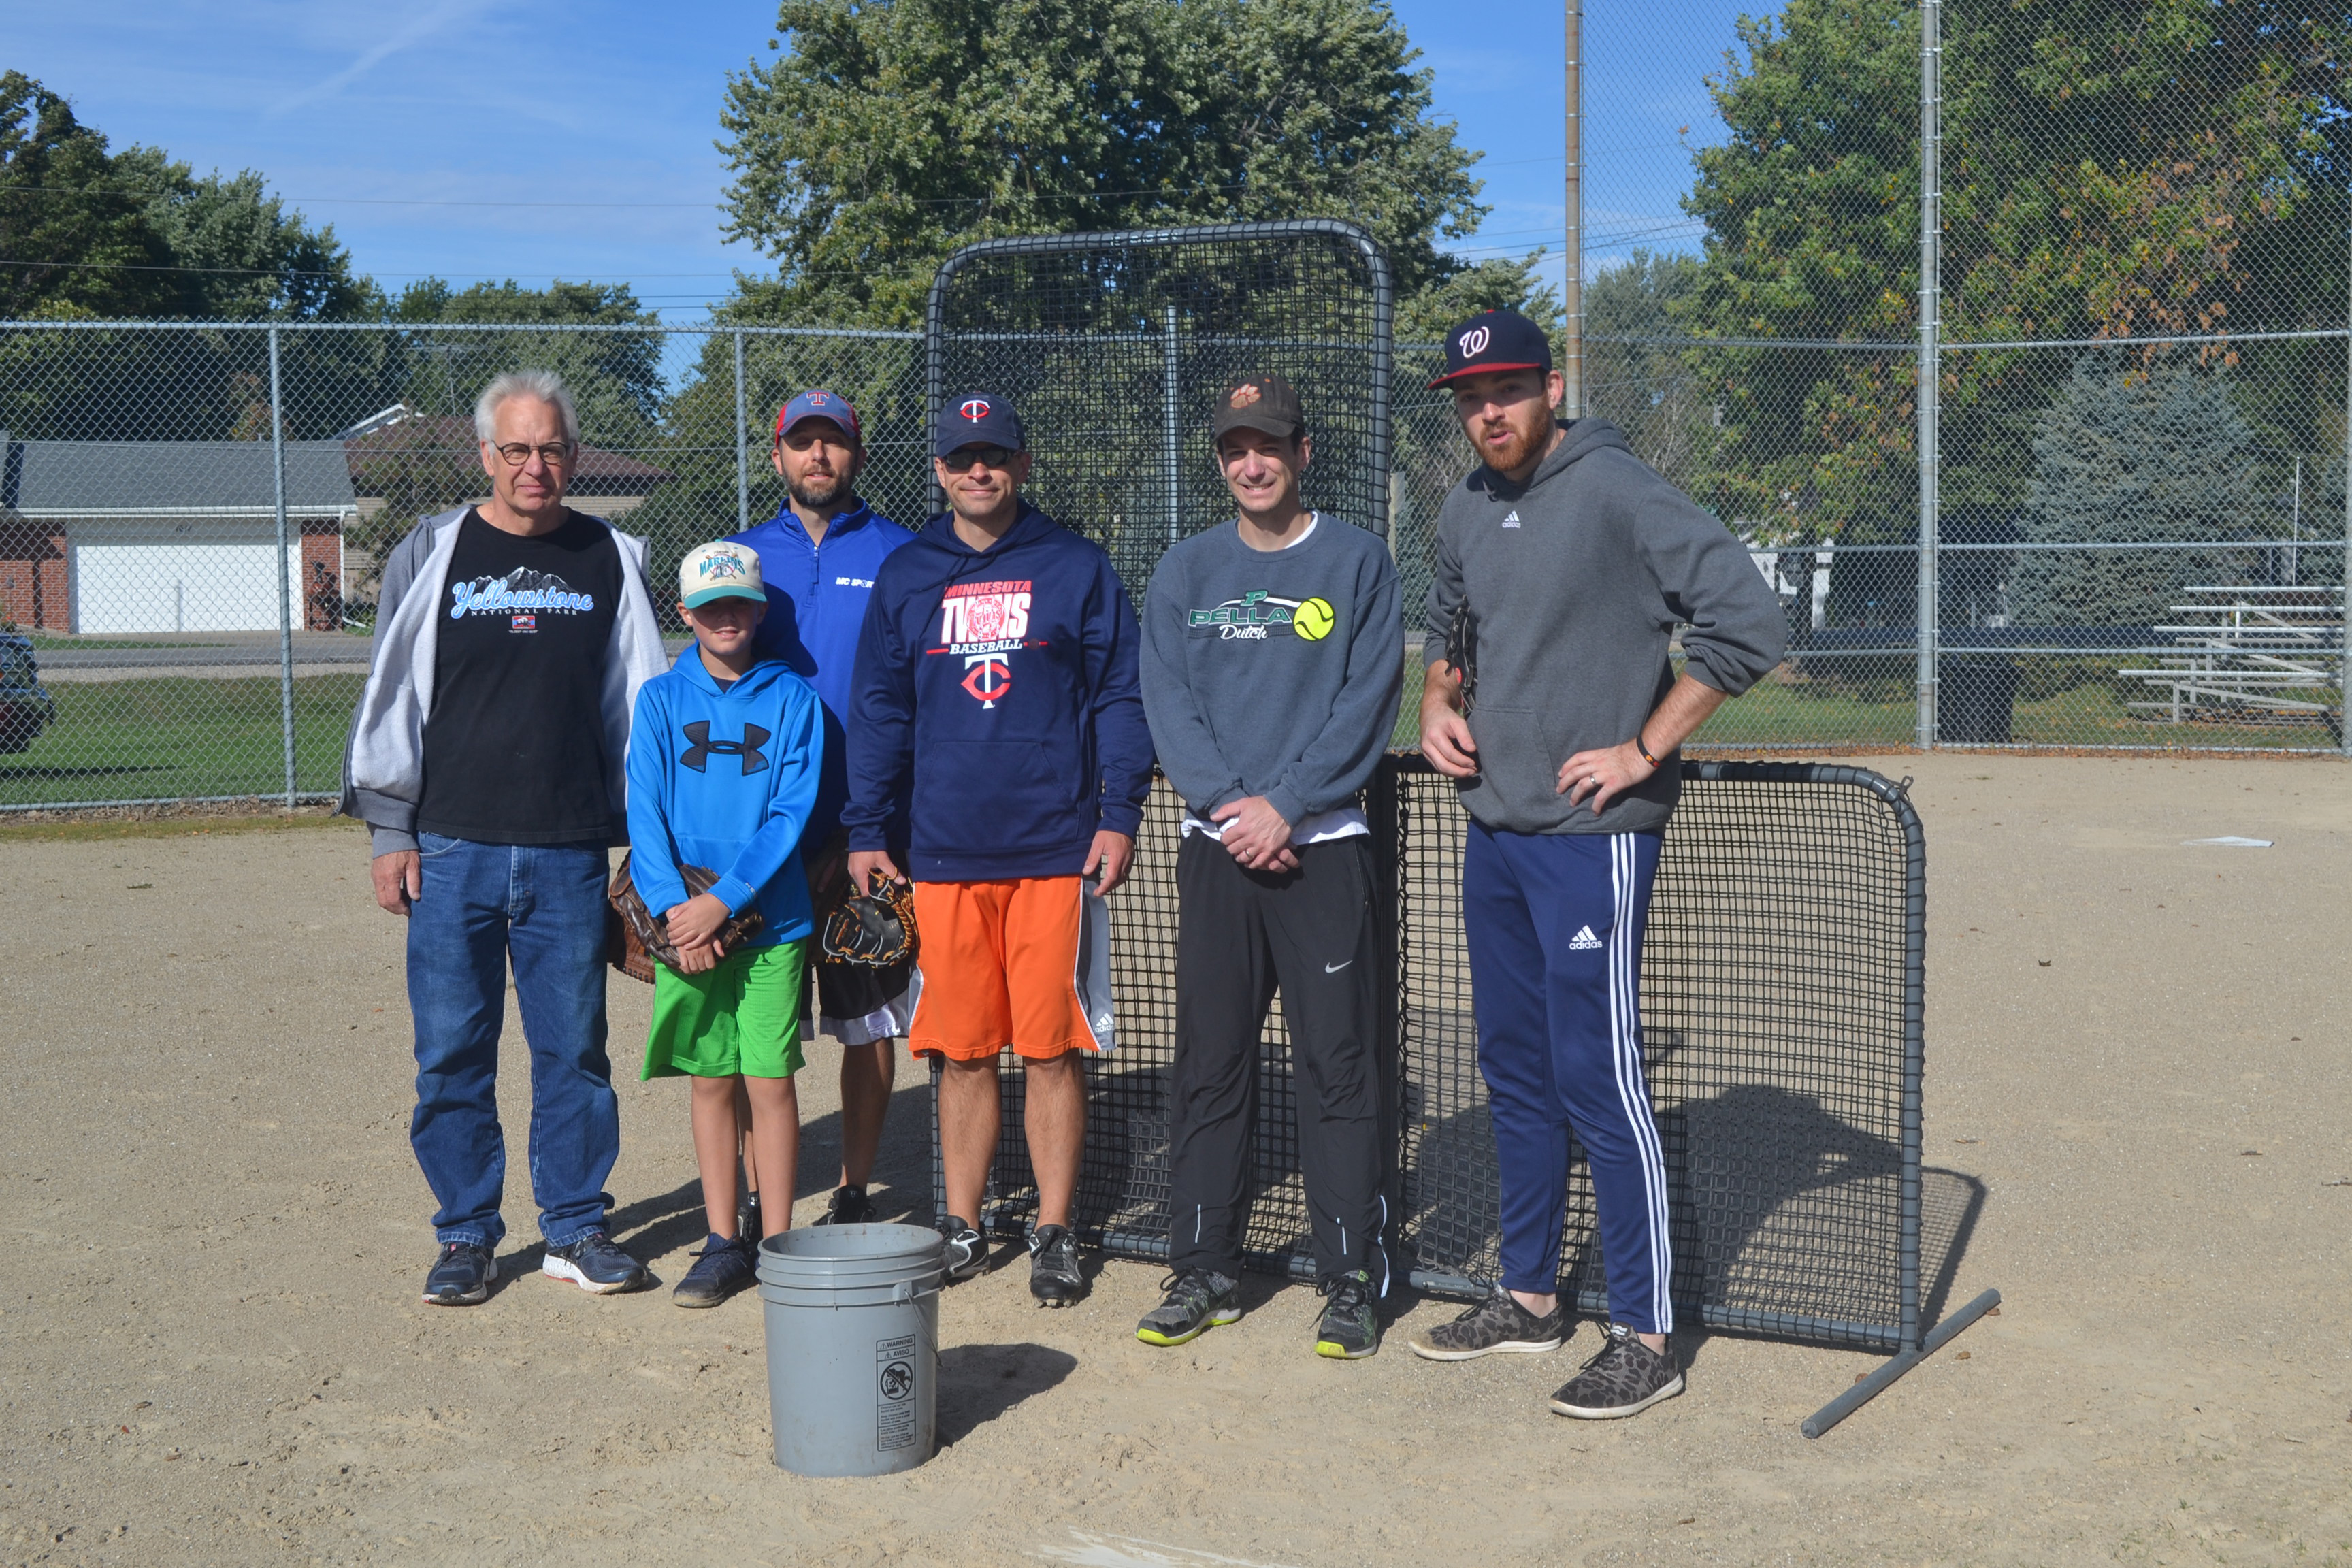 Getting the team back together: Coach David Brandt (far left) is joined (from left to right) by Andrew Carr, Dan Carr, the Brandt brothers Josiah and Nathanael, and Willie Stewart. Photo courtesy of Bridget Brandt